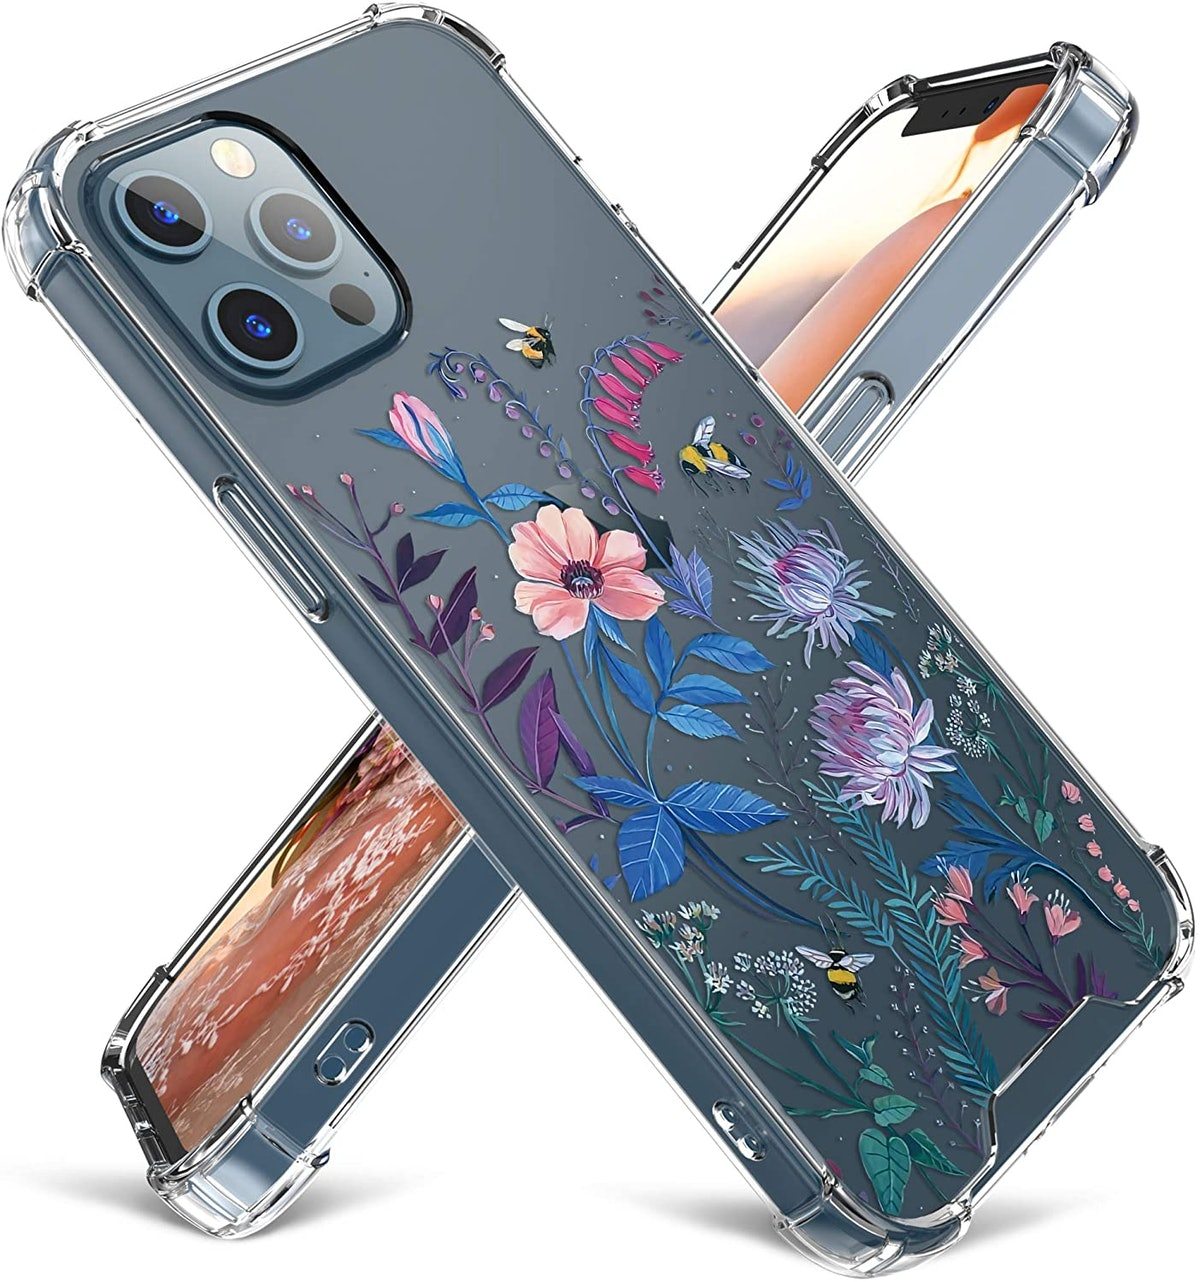 Cutebe Clear Case for iPhone 12 Blue Floral Design